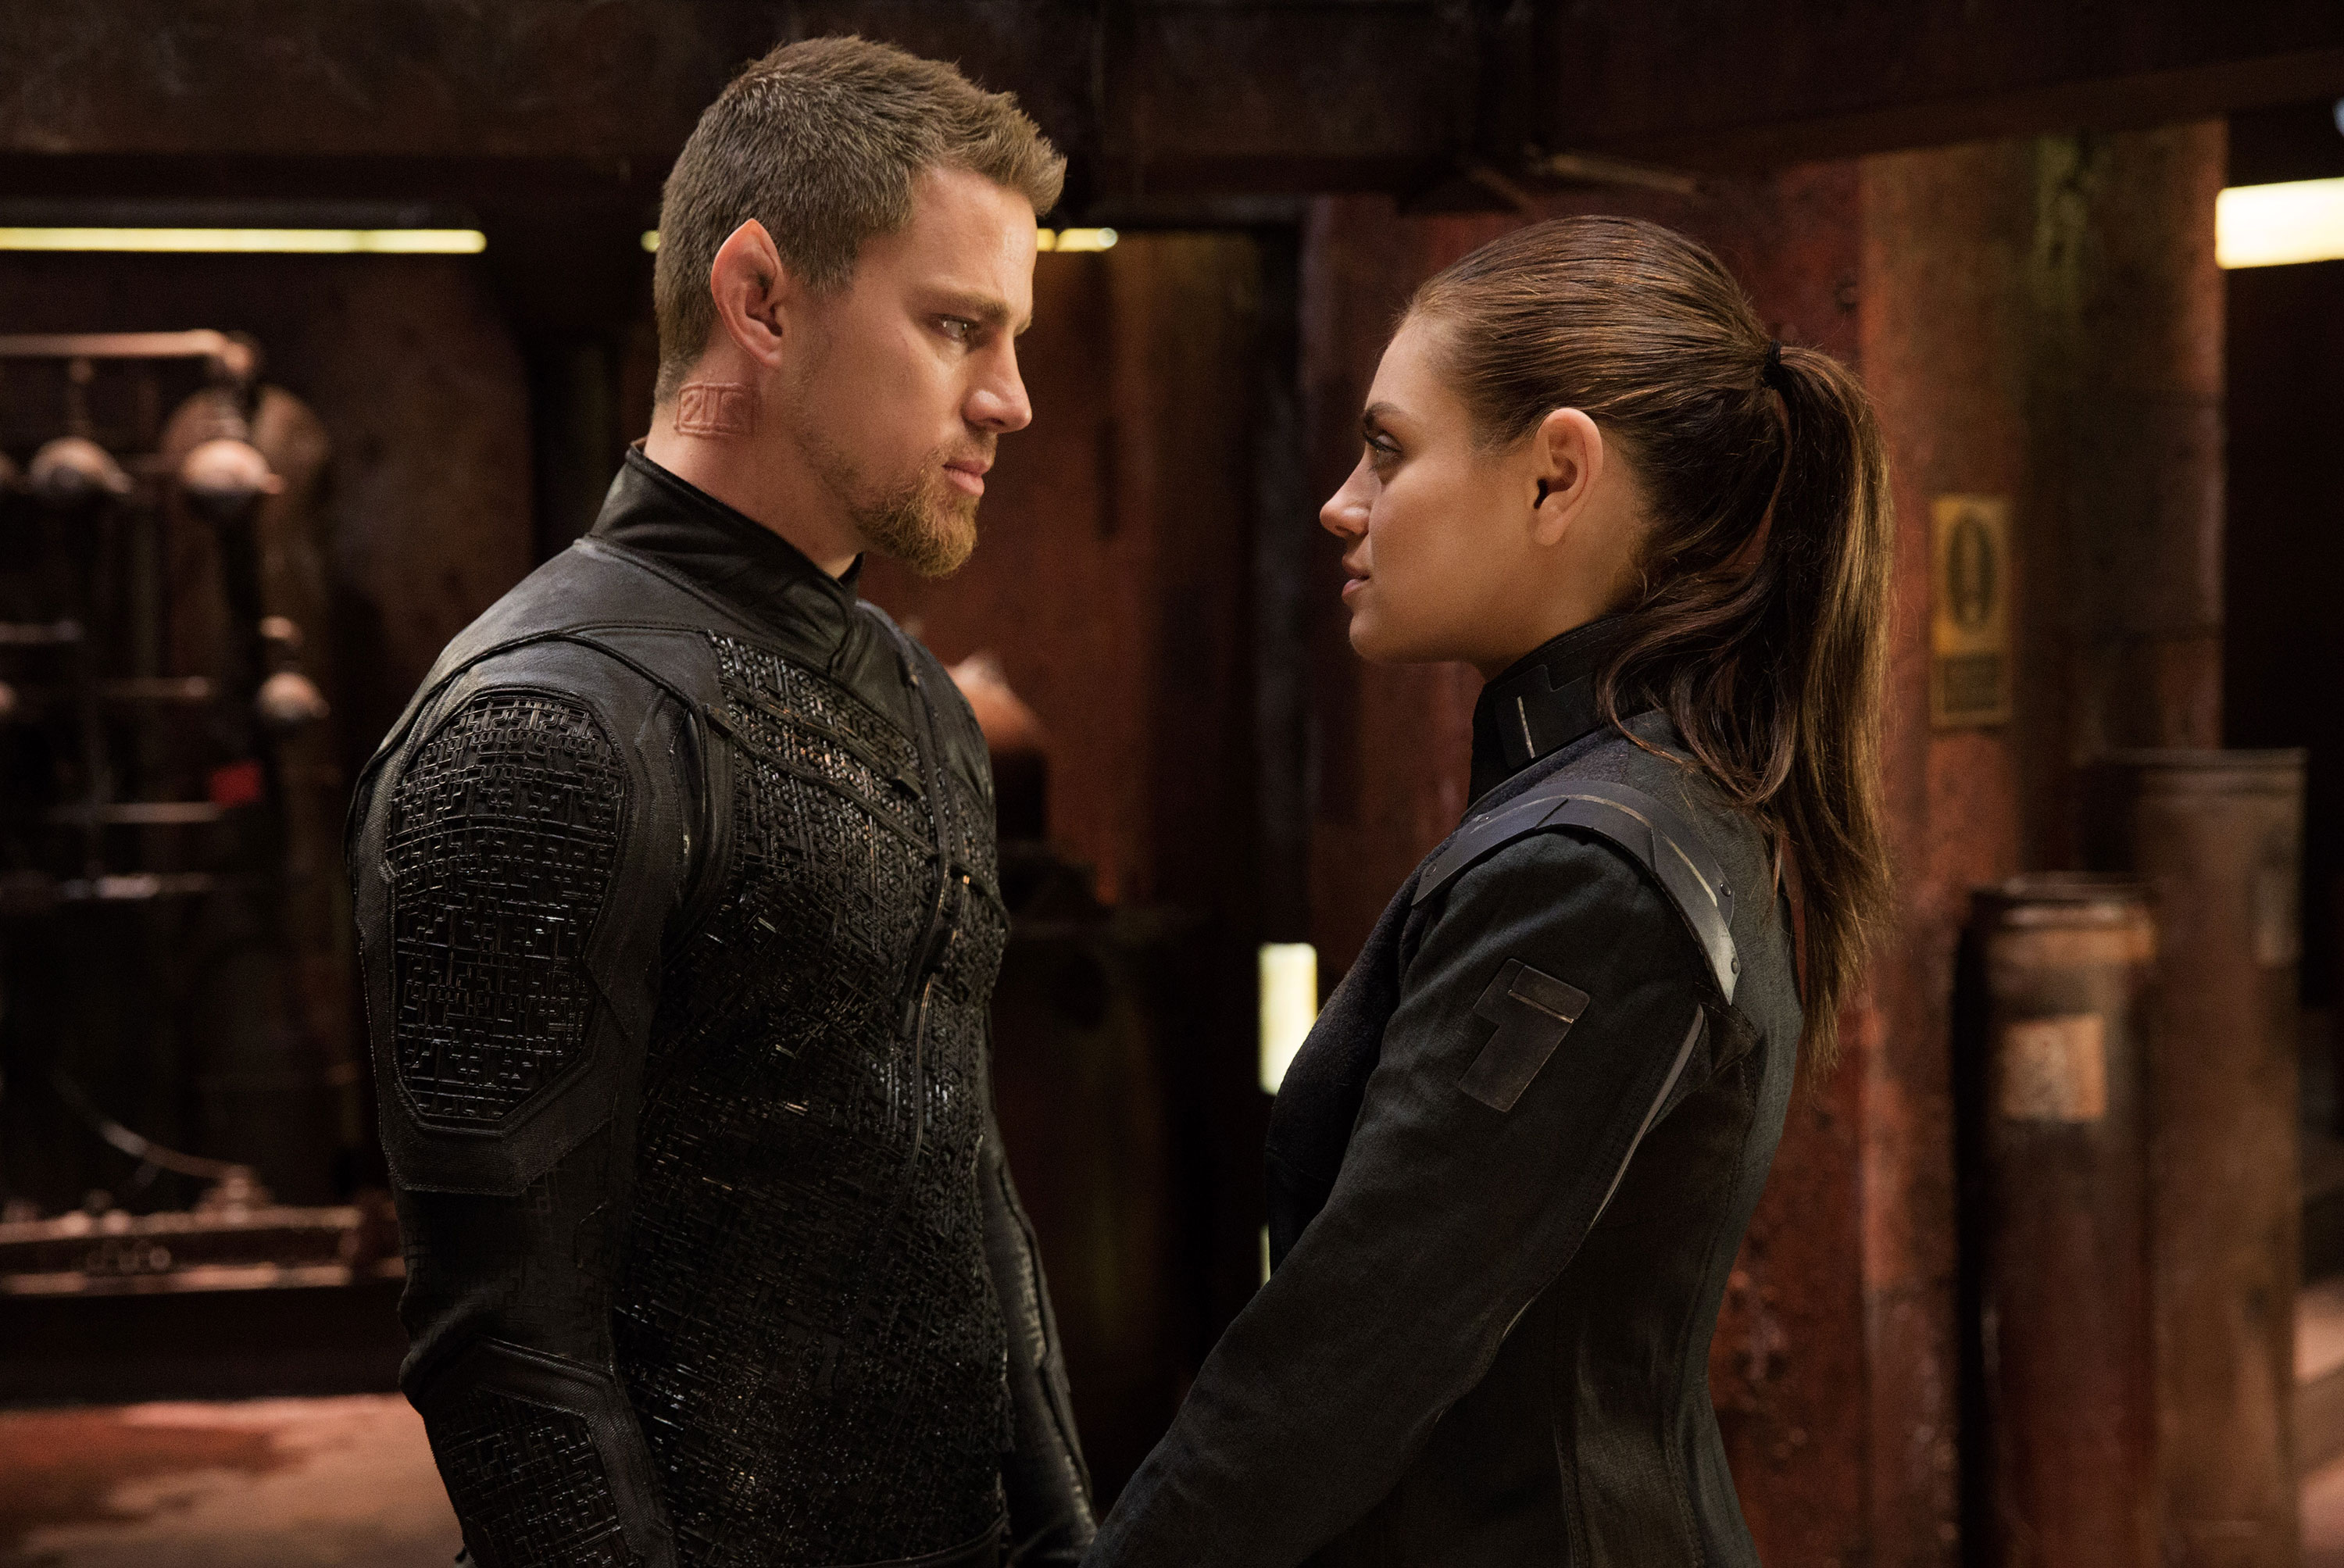 Channing Tatum & Mila Kunis in Jupiter Ascending